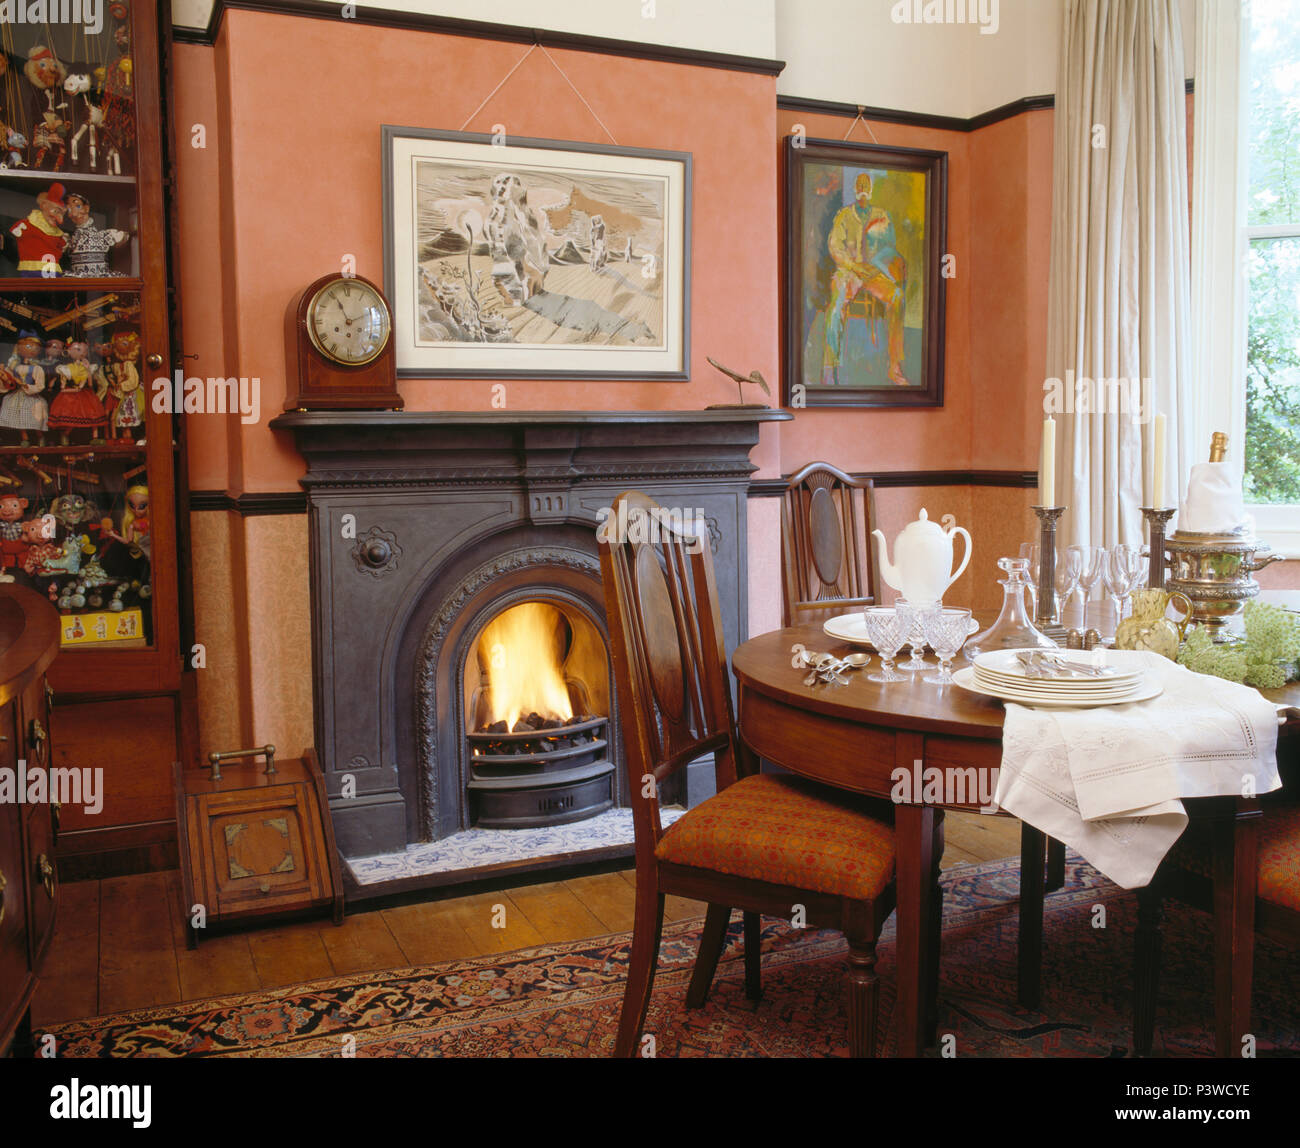 Genial Antique Table And Chairs In Pale Terracotta Victorian Style Dining Room  With Lighted Fire In Fireplace